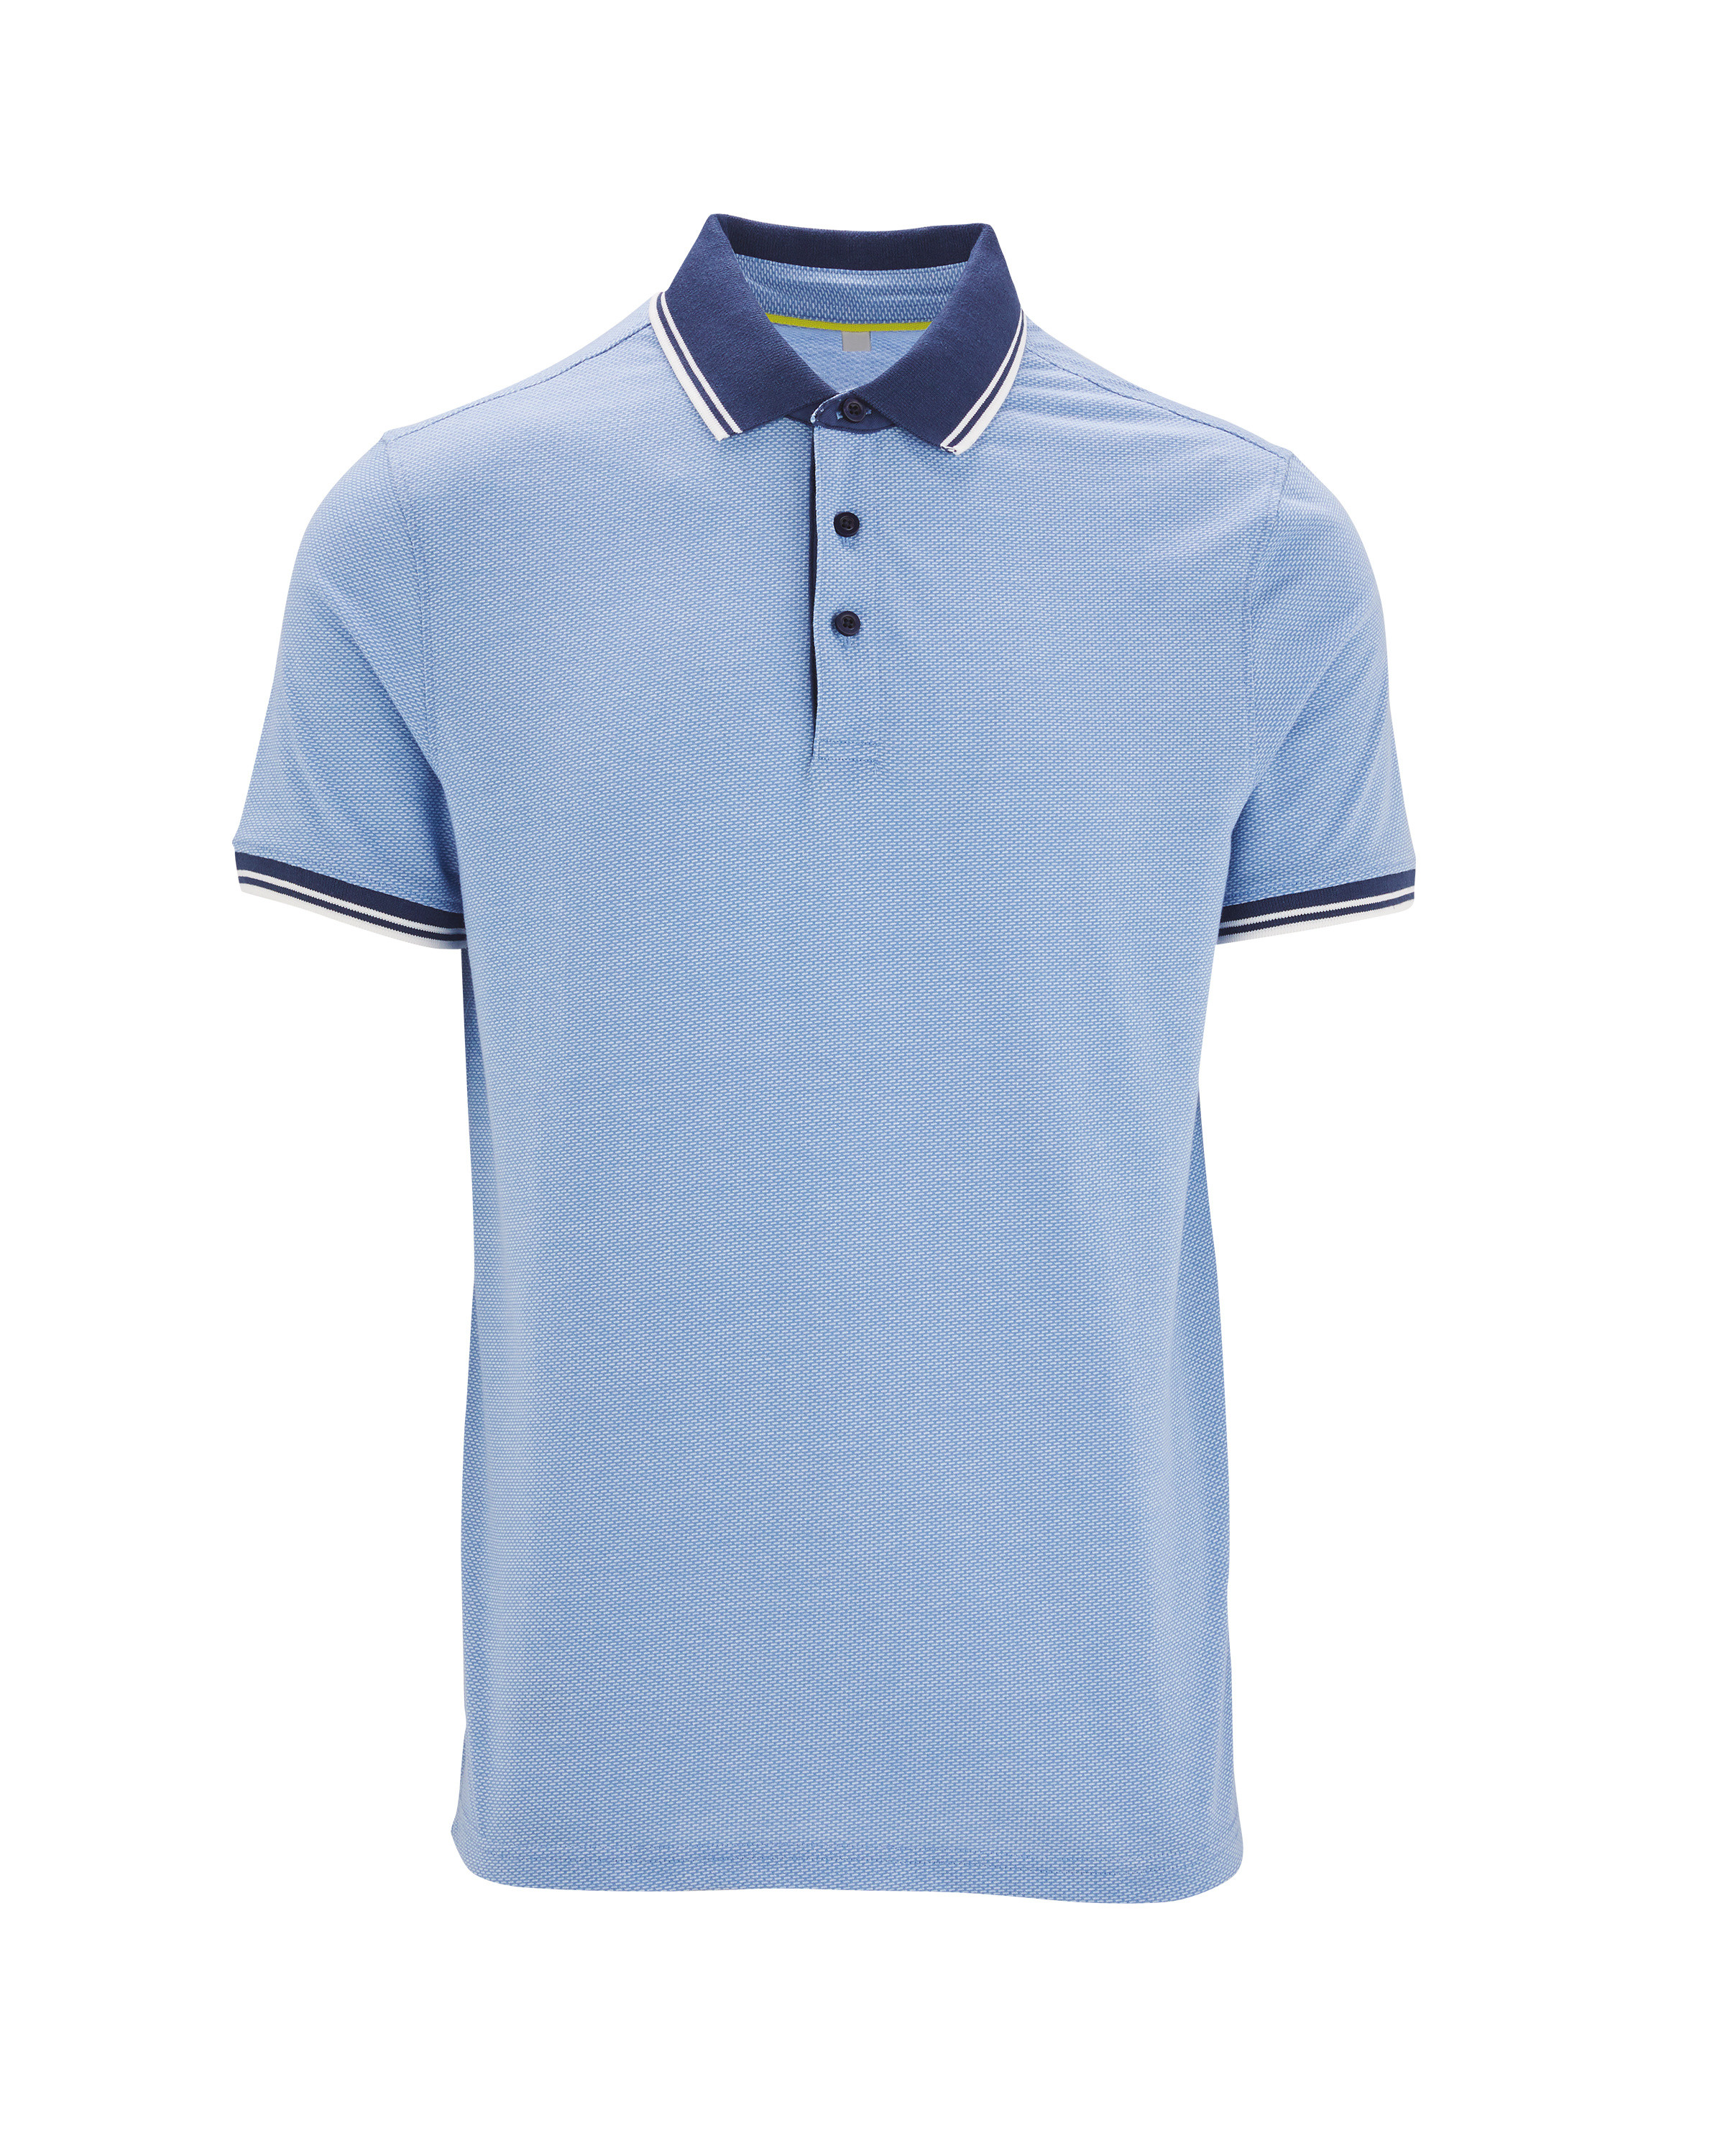 Avenue Men's Blue/White Polo Shirt